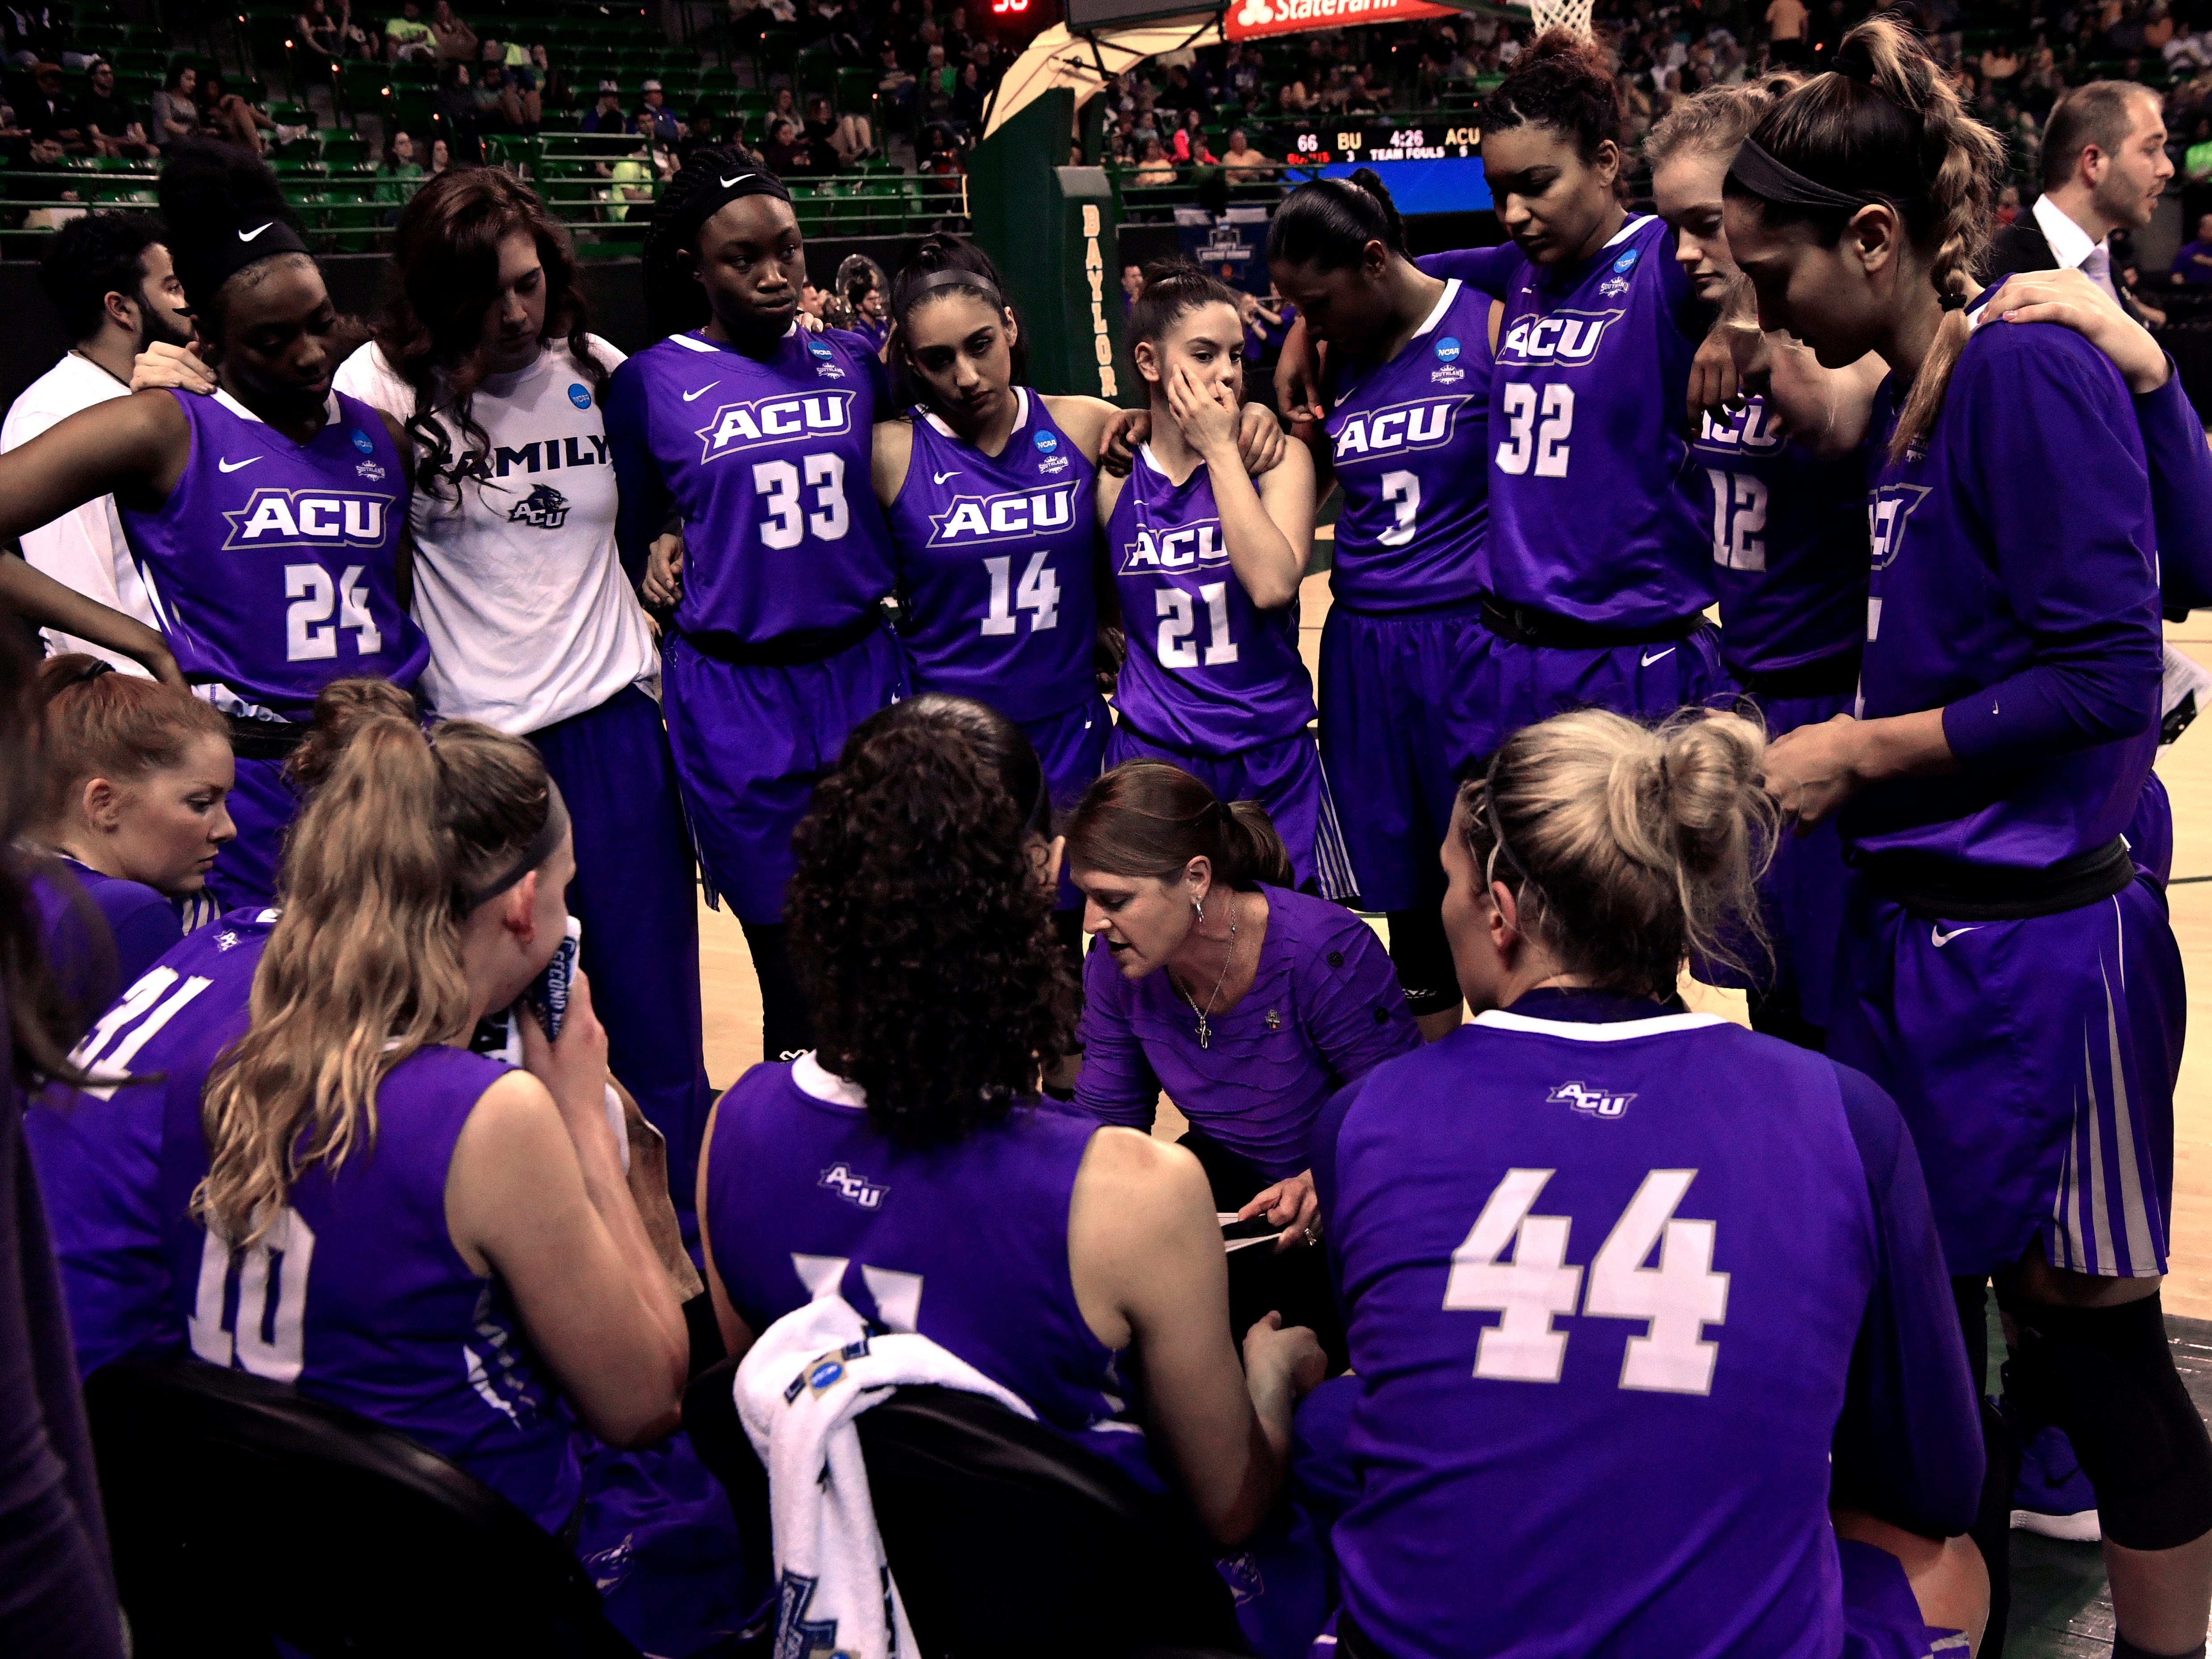 The ACU women's basketball team huddles early in the second half of Saturday's NCAA Tournament women's round 1 basketball game March 23, 2019. Baylor defeated Abilene Christian University, 95-38.